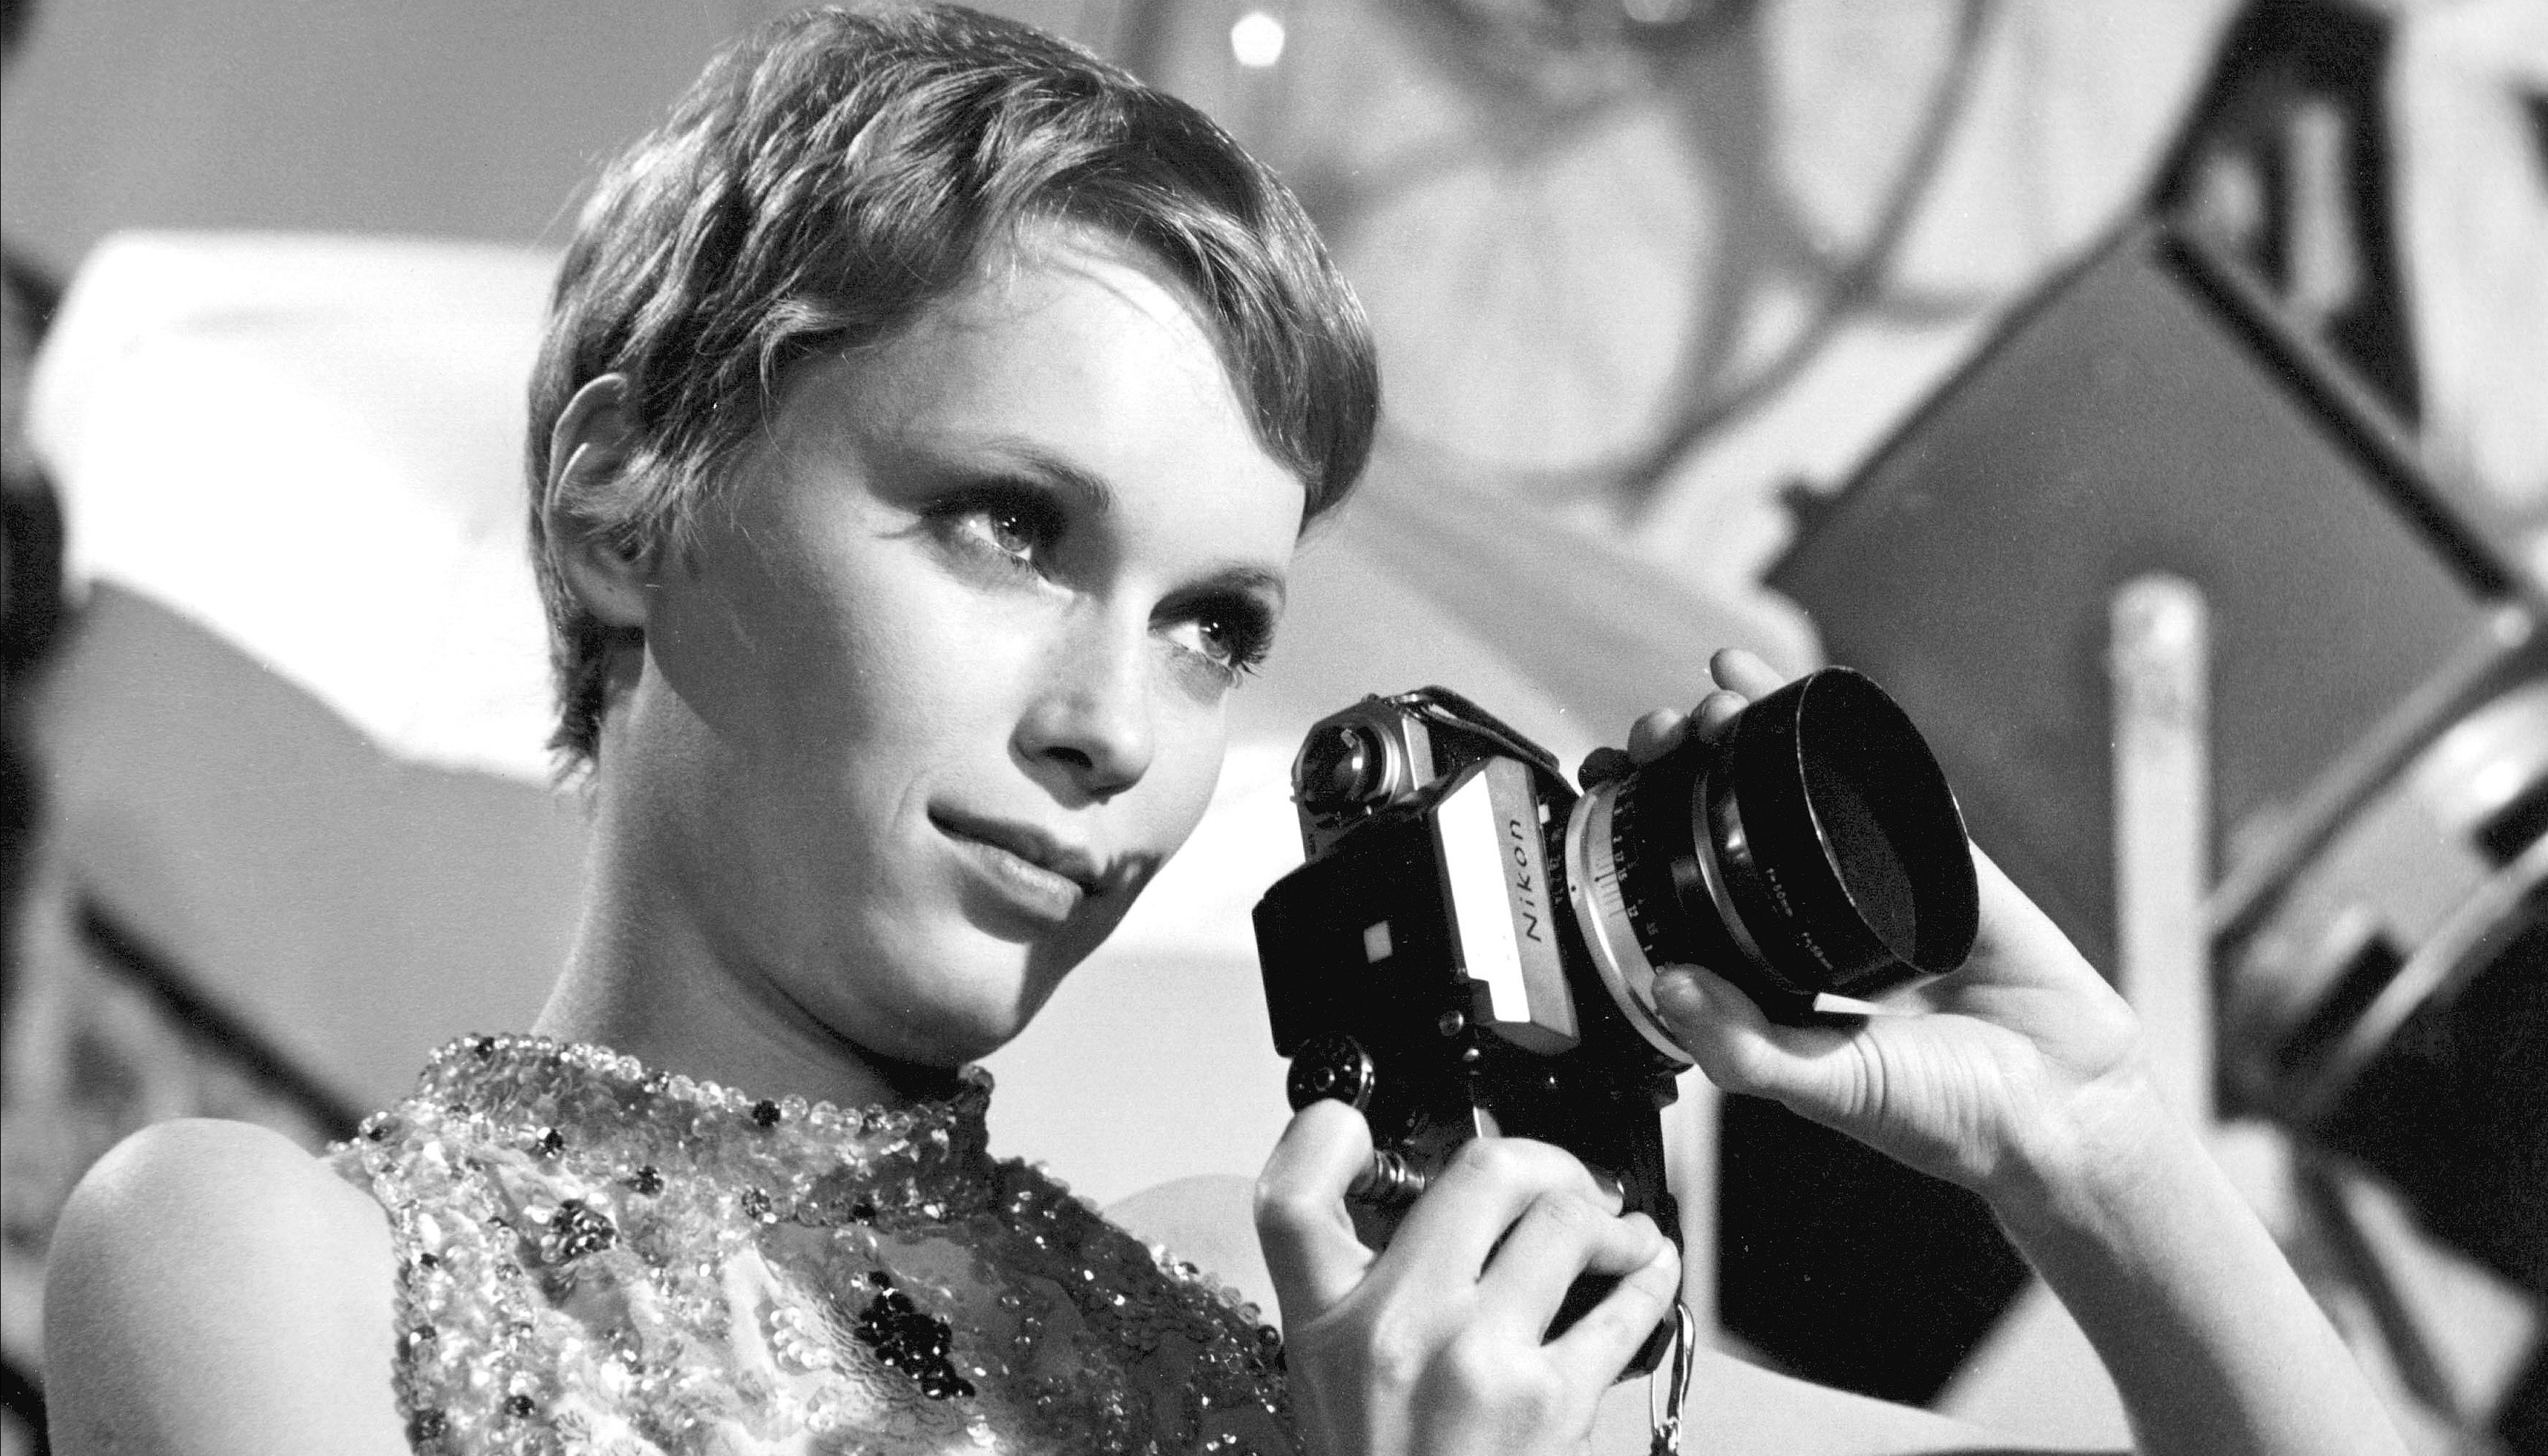 Mia Farrow Actress Rosemarys Baby Mia Farrow is the daughter of the director John Farrow and the actress and Tarzangirl Maureen OSullivan She debuted at the